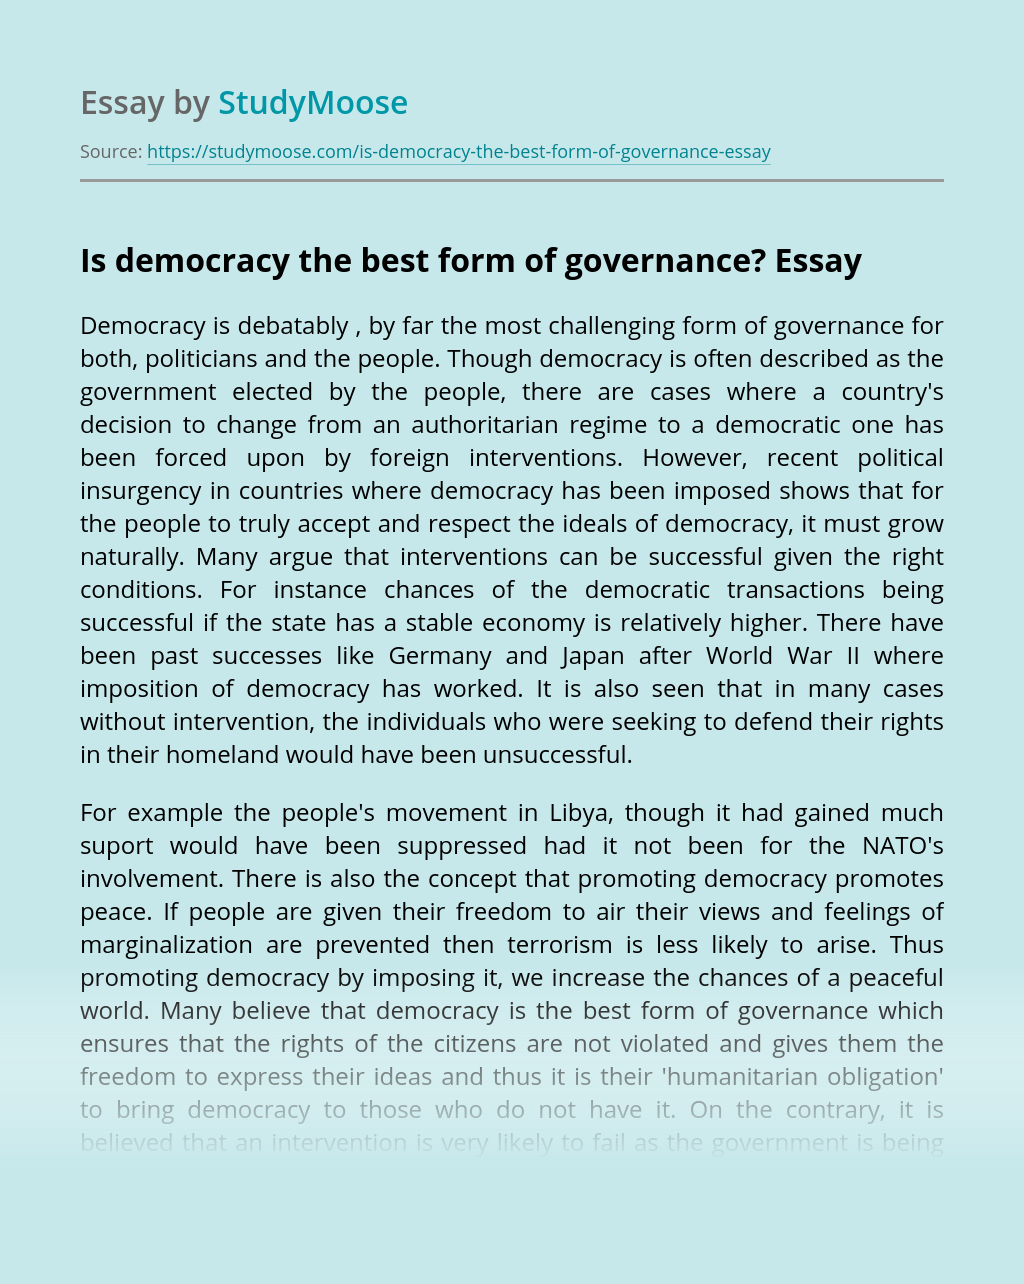 Is democracy the best form of governance?